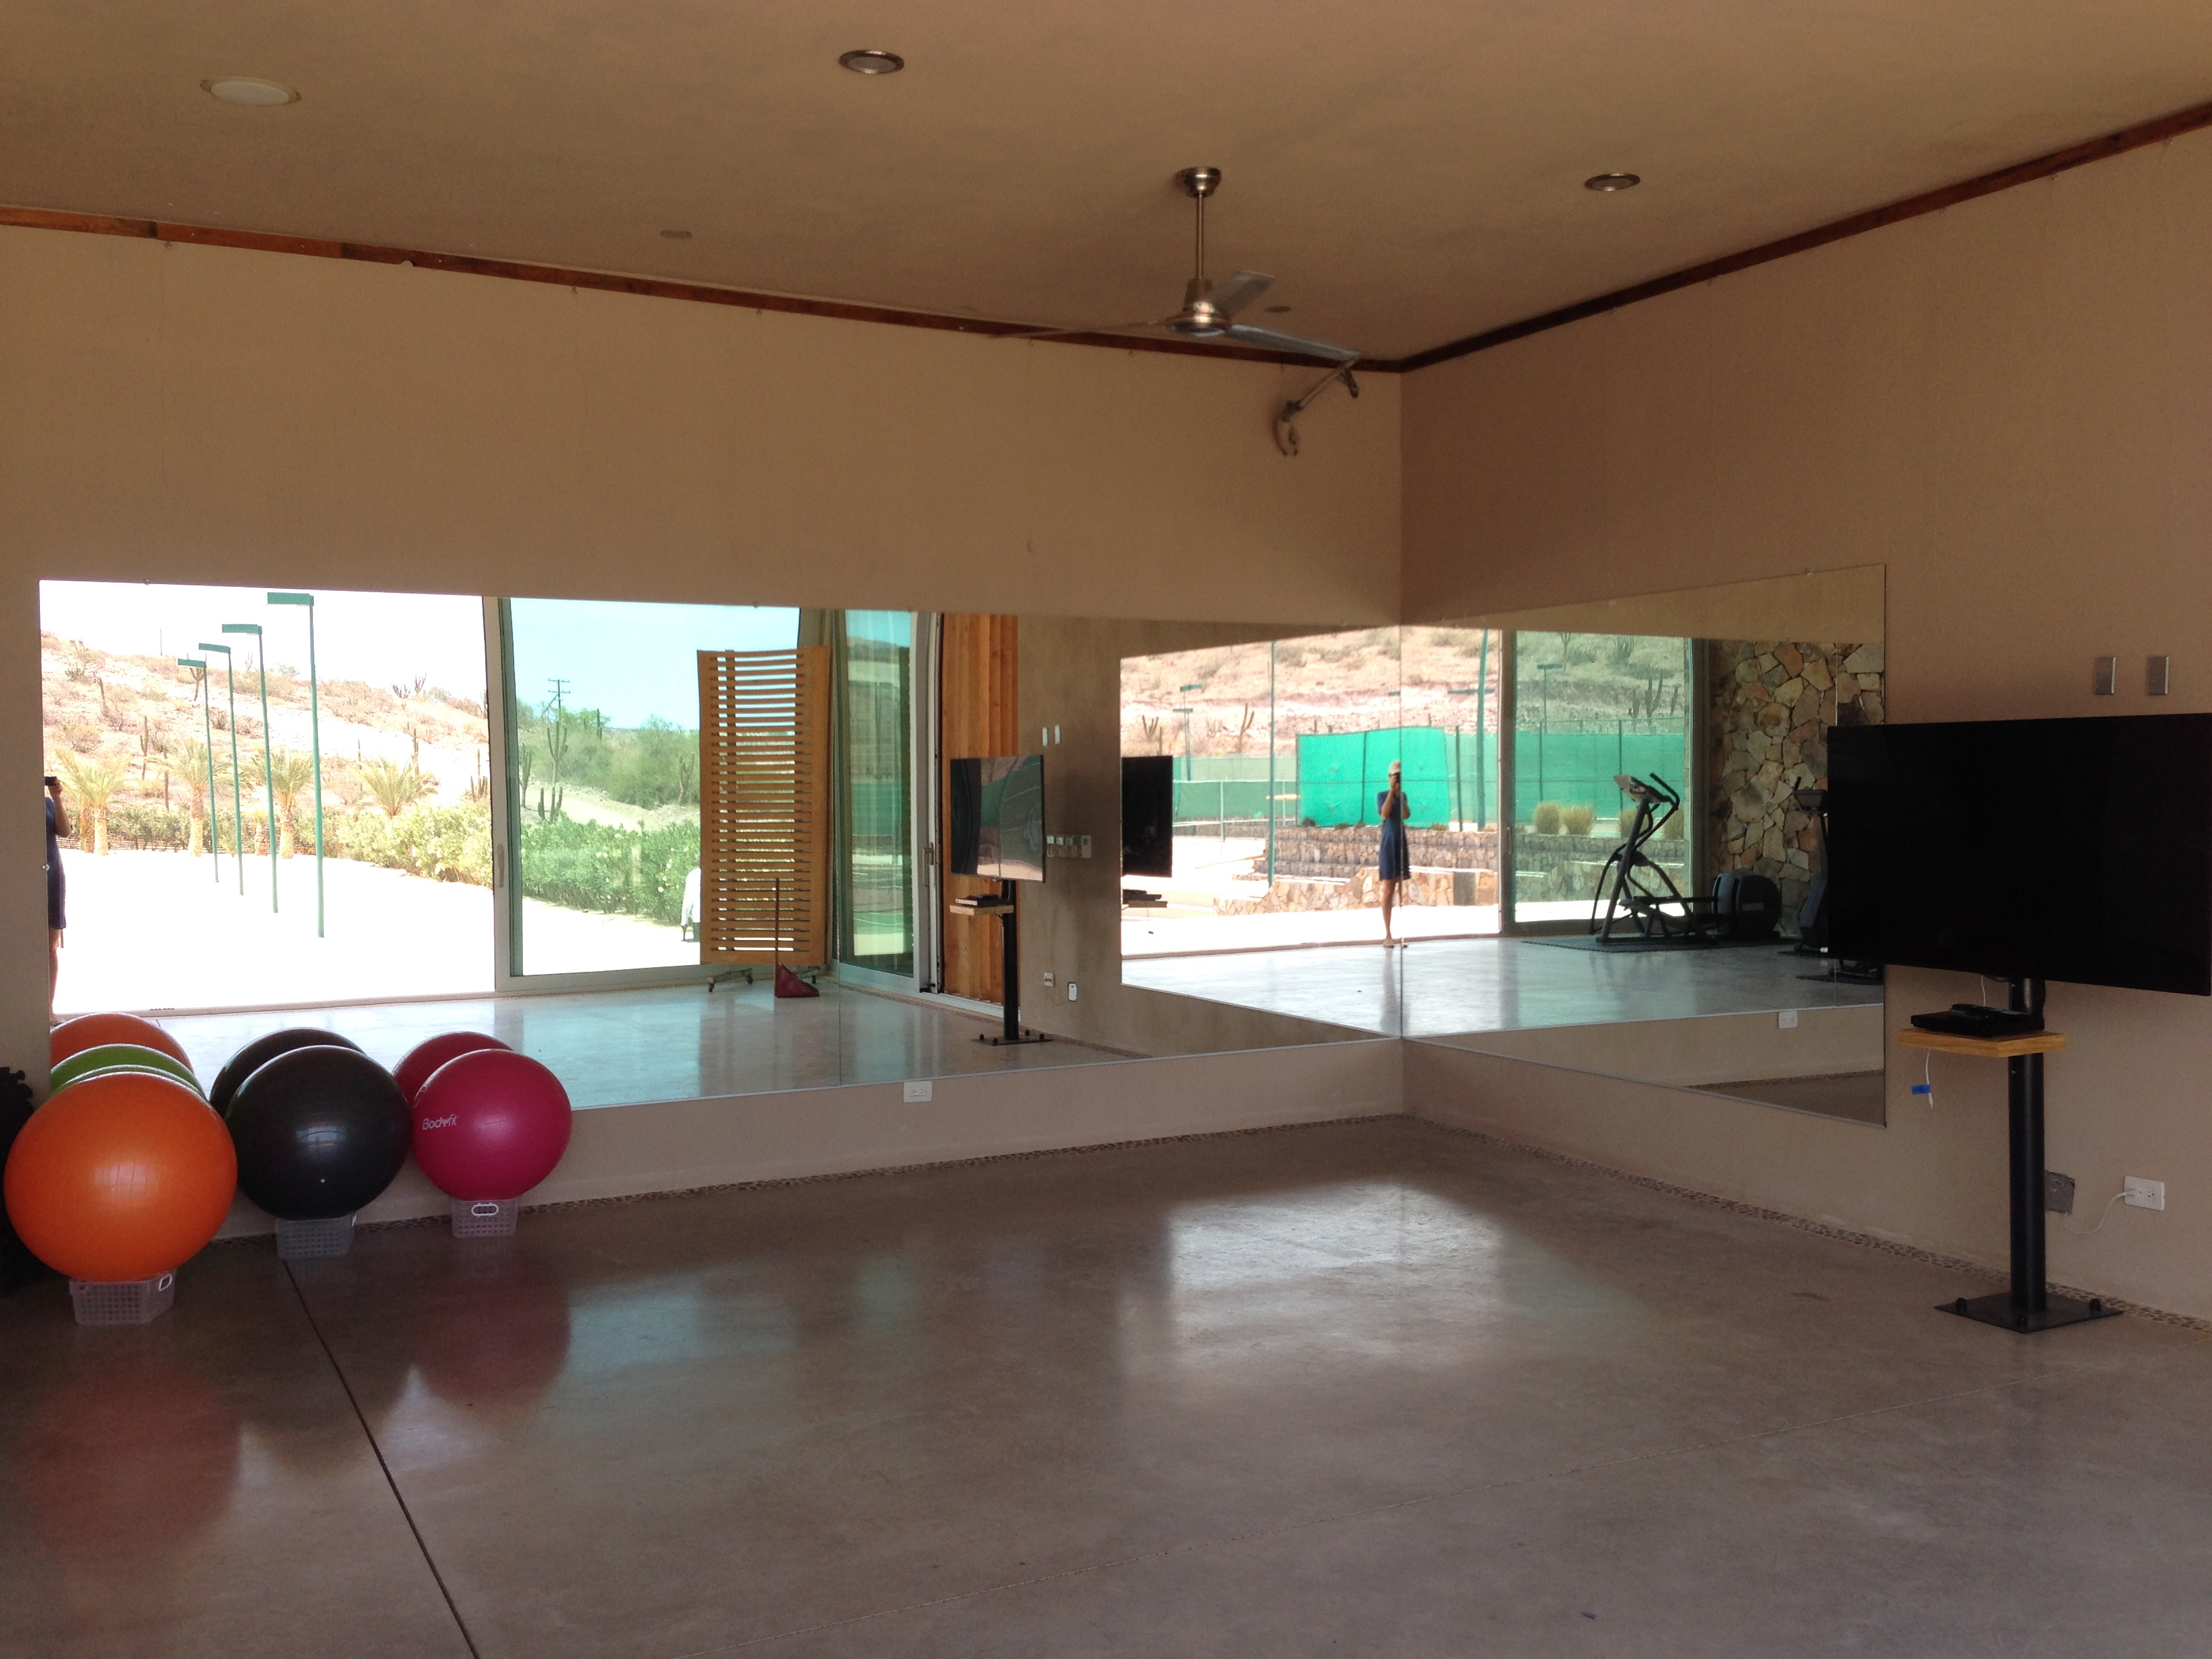 pedregal de la paz gym